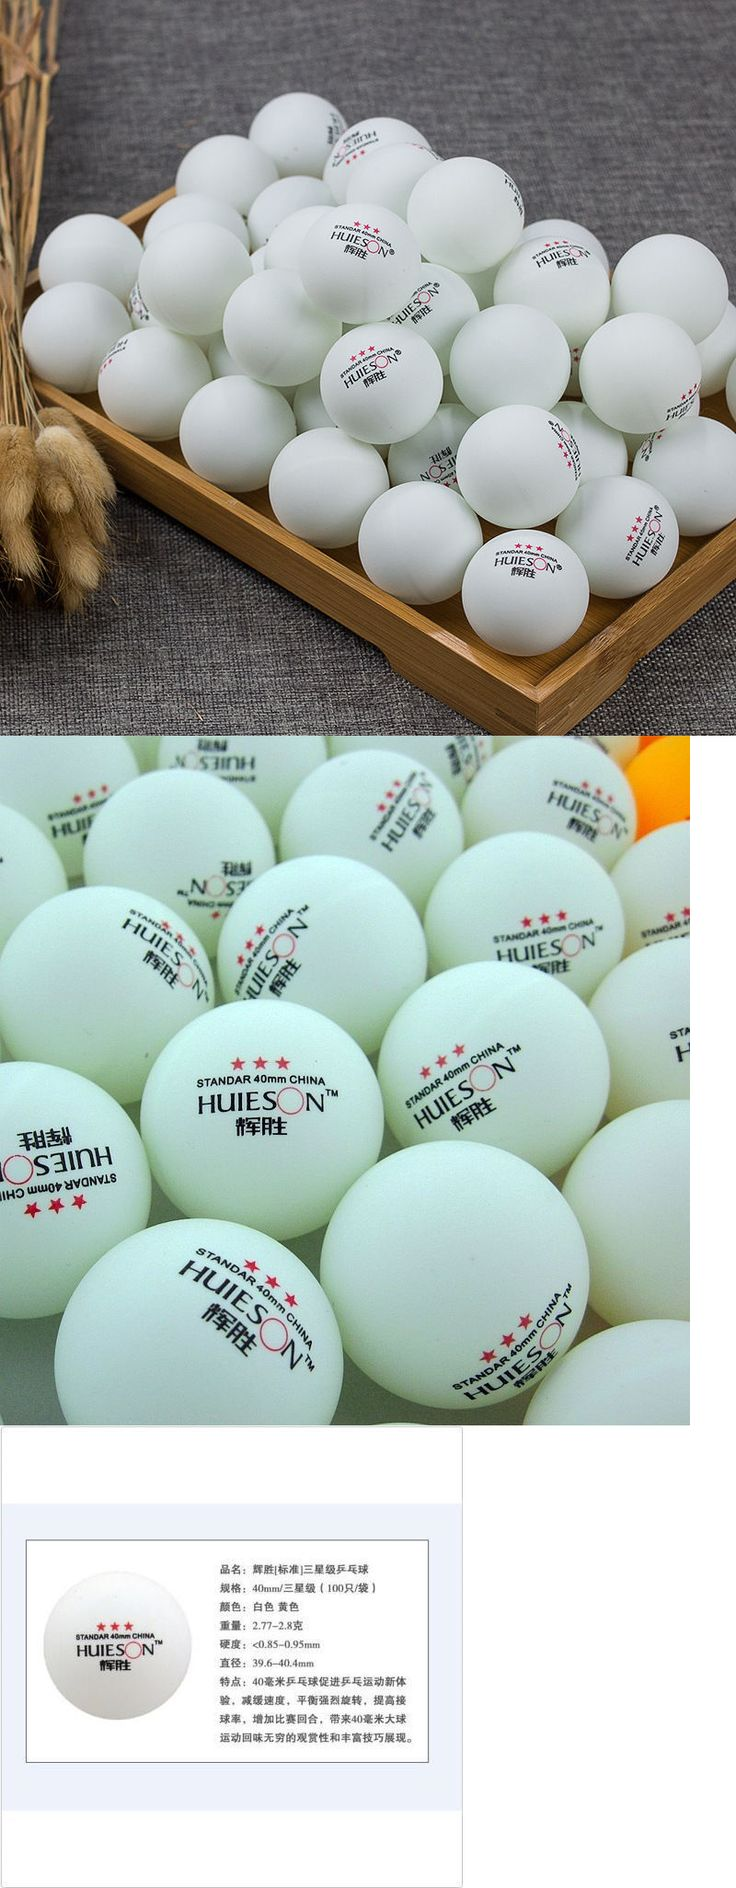 Balls 97073: 200Pcs 3-Star 40Mm Olympic Table Tennis Ball Ping Pong Balls White Free Shipping -> BUY IT NOW ONLY: $38.0 on eBay!